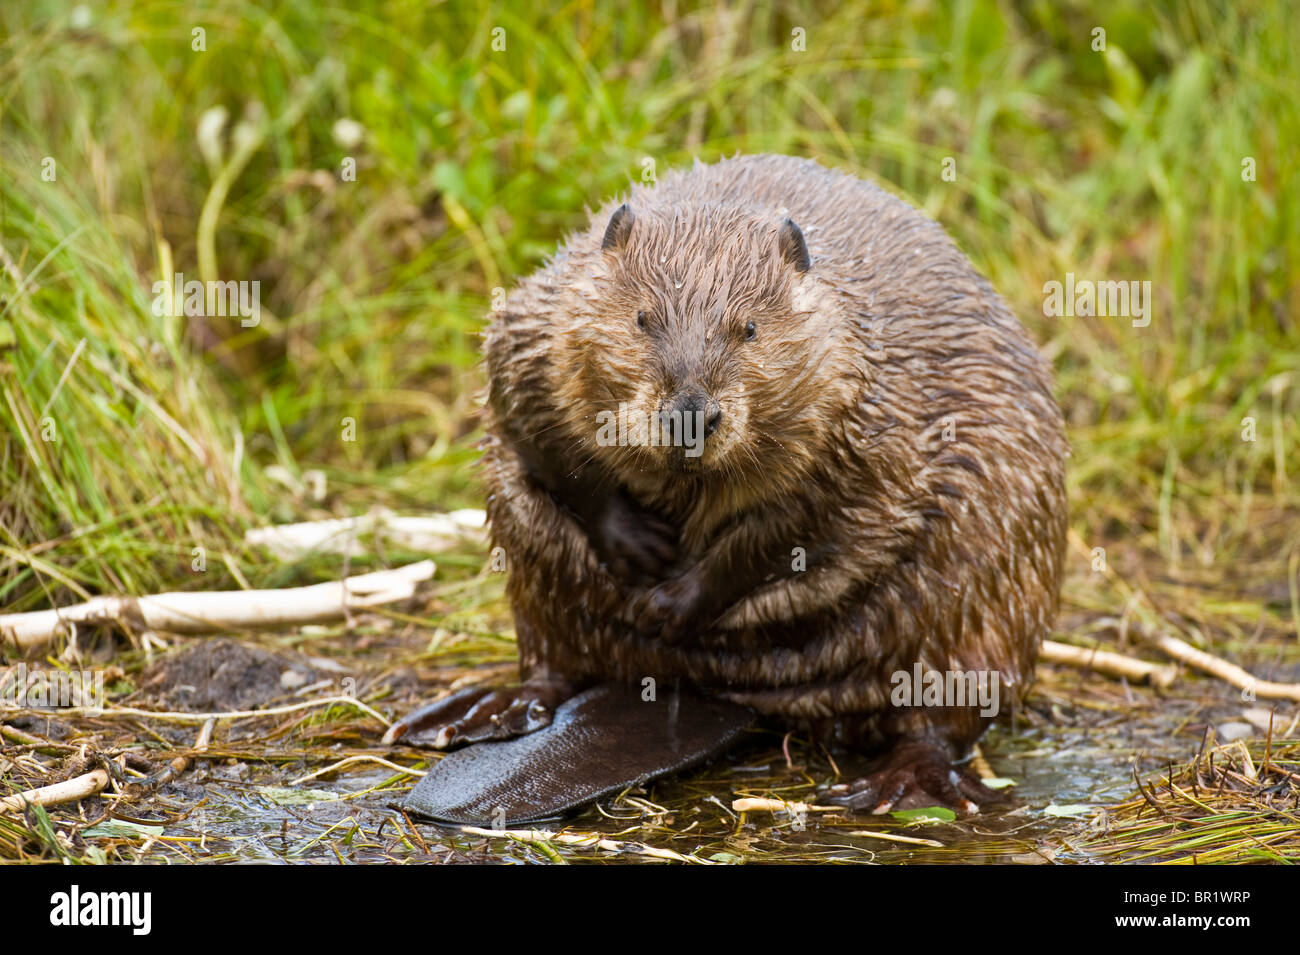 An beaver sitting on his rear end scratching and rubbing his fur - Stock Image